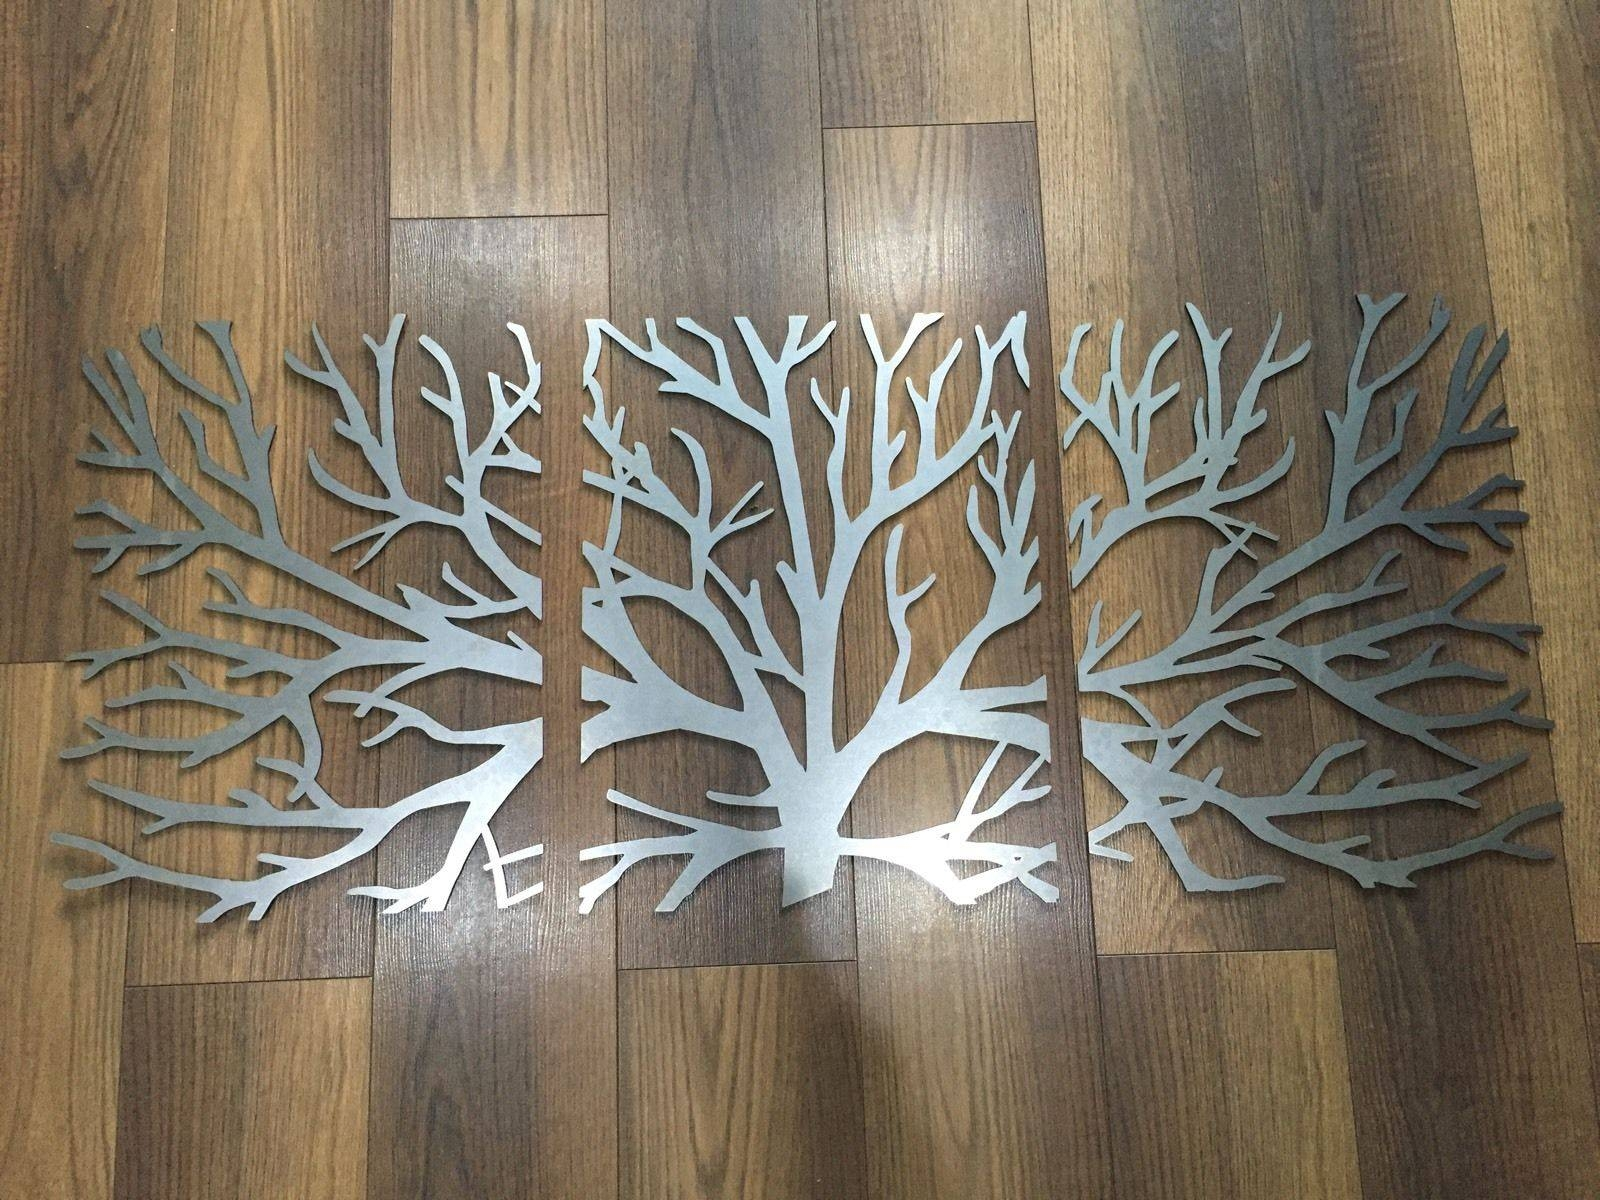 Wall Art Designs: Metal Wall Art Decor And Sculptures Wooden Metal Intended For Current Outdoor Metal Wall Art Decor And Sculptures (View 10 of 20)